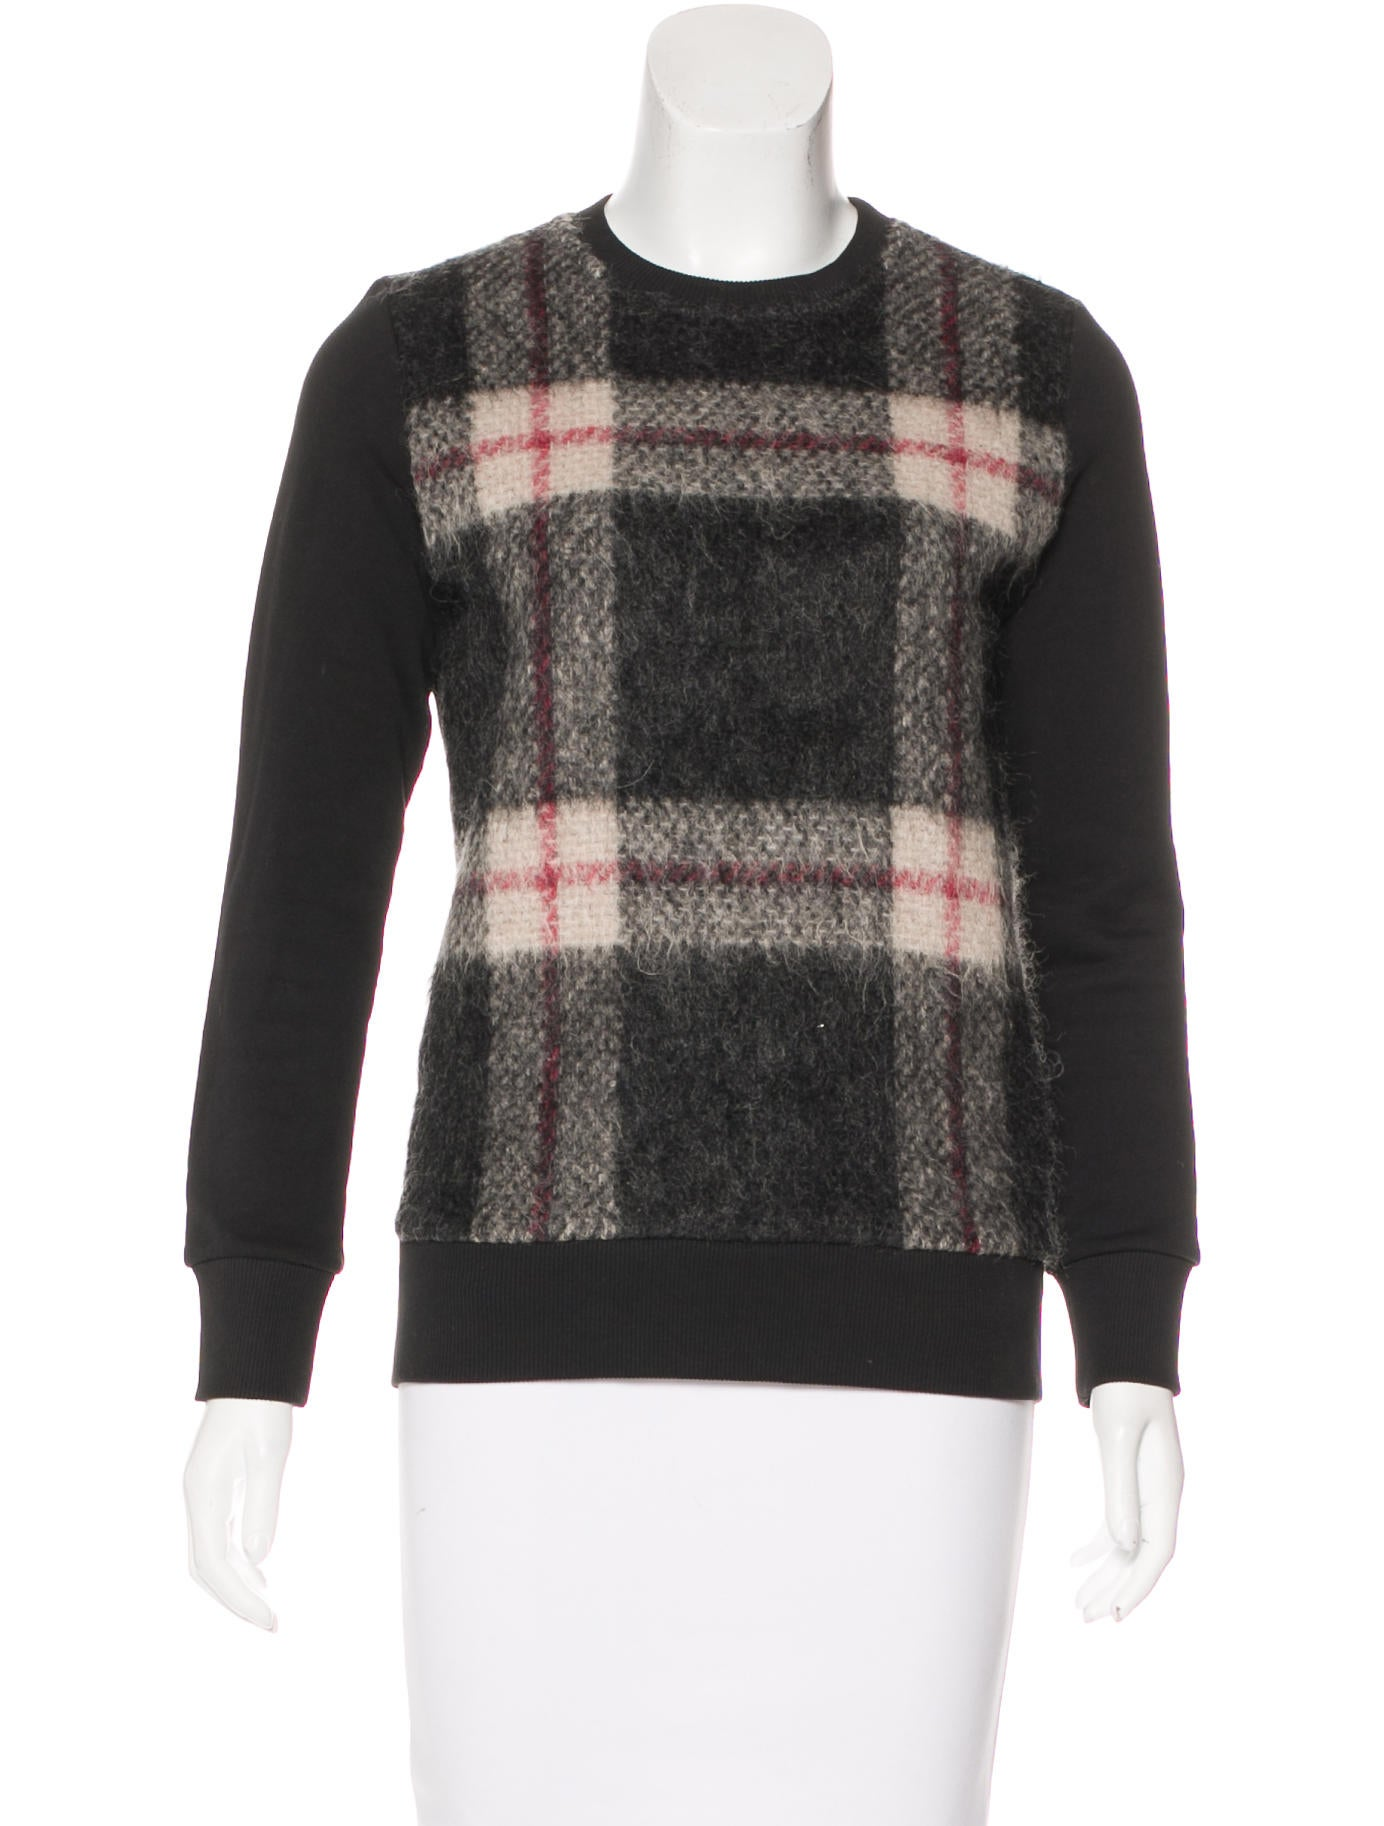 sonia by sonia rykiel plaid crew neck sweatshirt. Black Bedroom Furniture Sets. Home Design Ideas